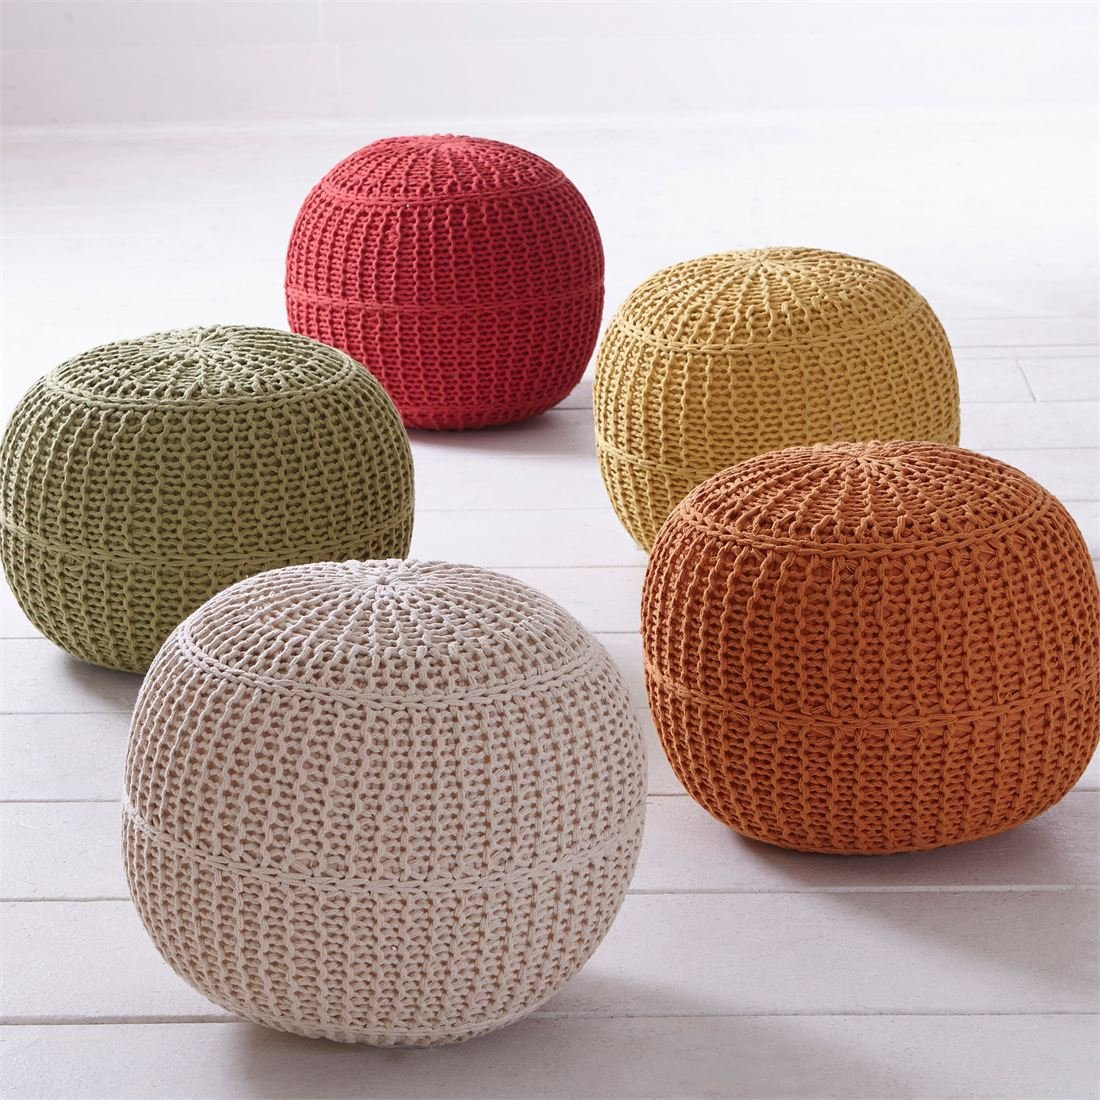 amazoncom brylanehome handknitted ottoman pouf (blue  - amazoncom brylanehome handknitted ottoman pouf (blue) kitchen  dining